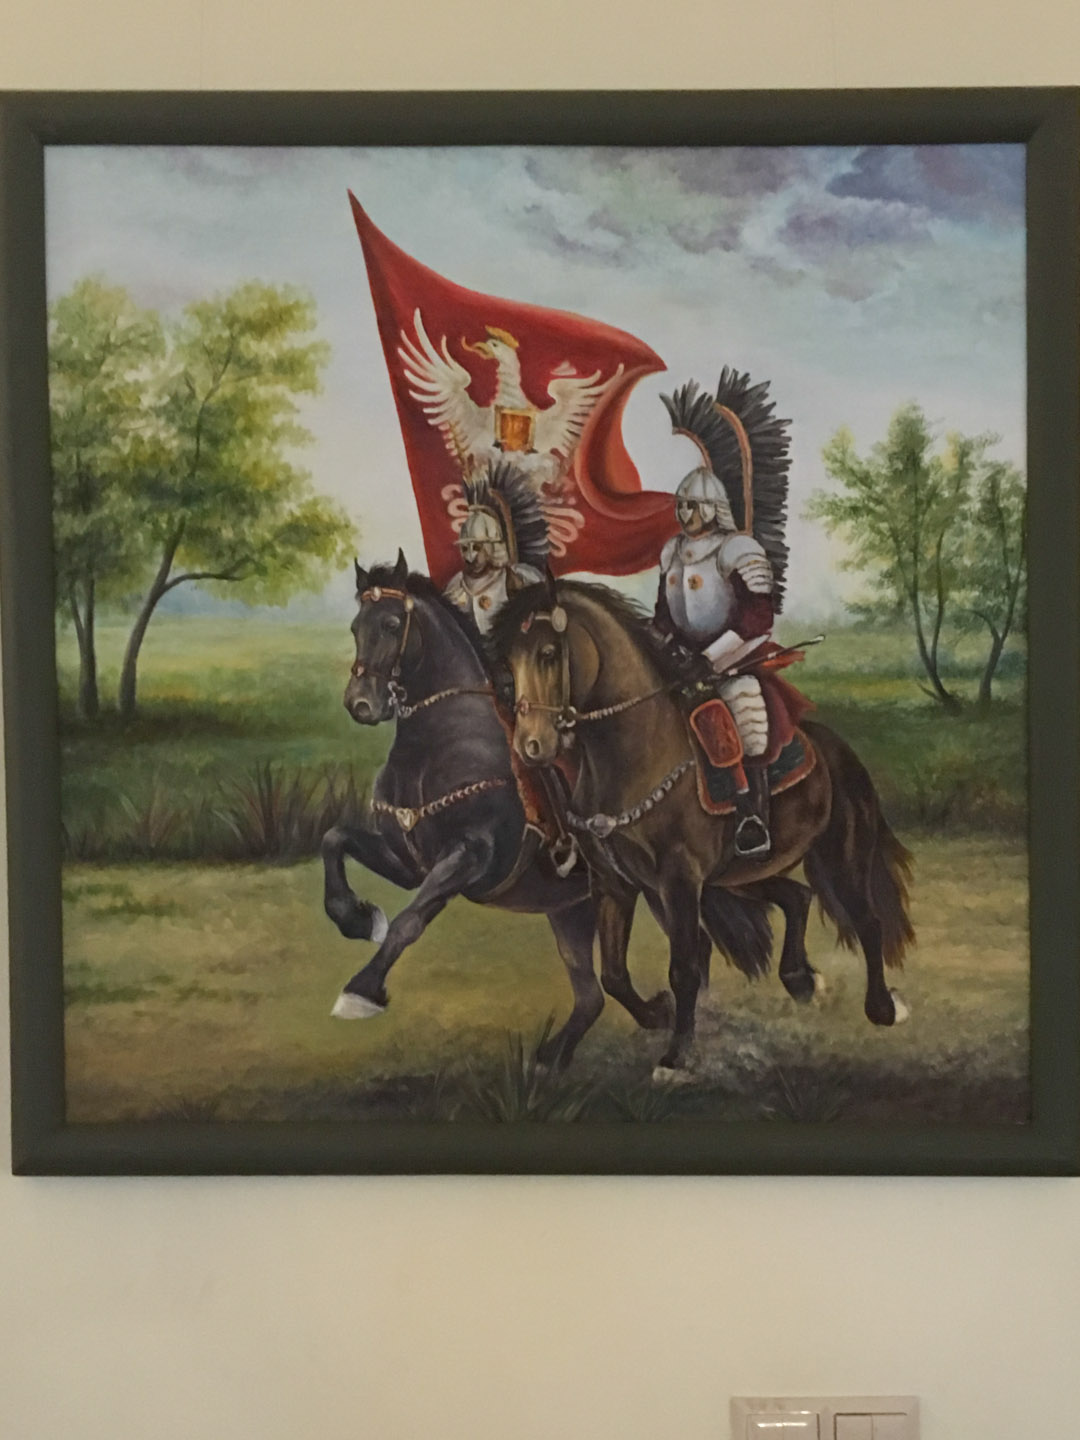 Image of the Polish Hussars